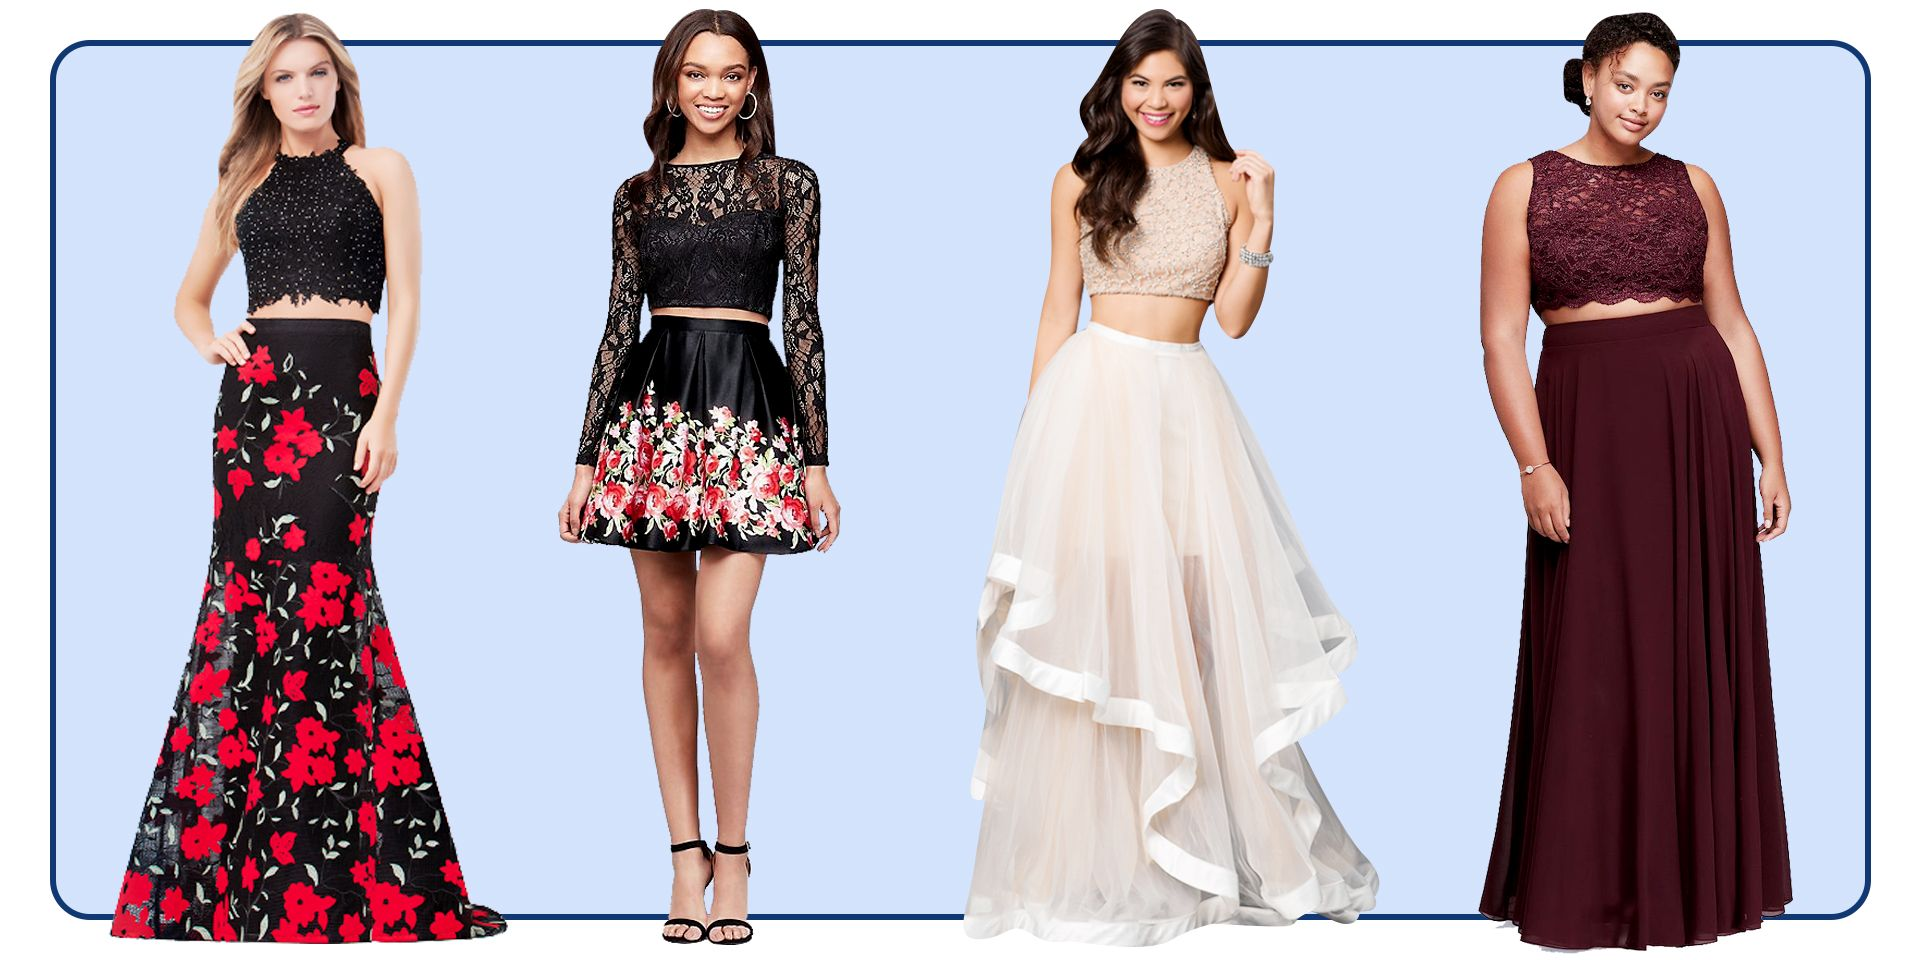 211bef55b47f 16 Two-Piece Prom Dresses So Cute You'll Want to Wear Them to Class